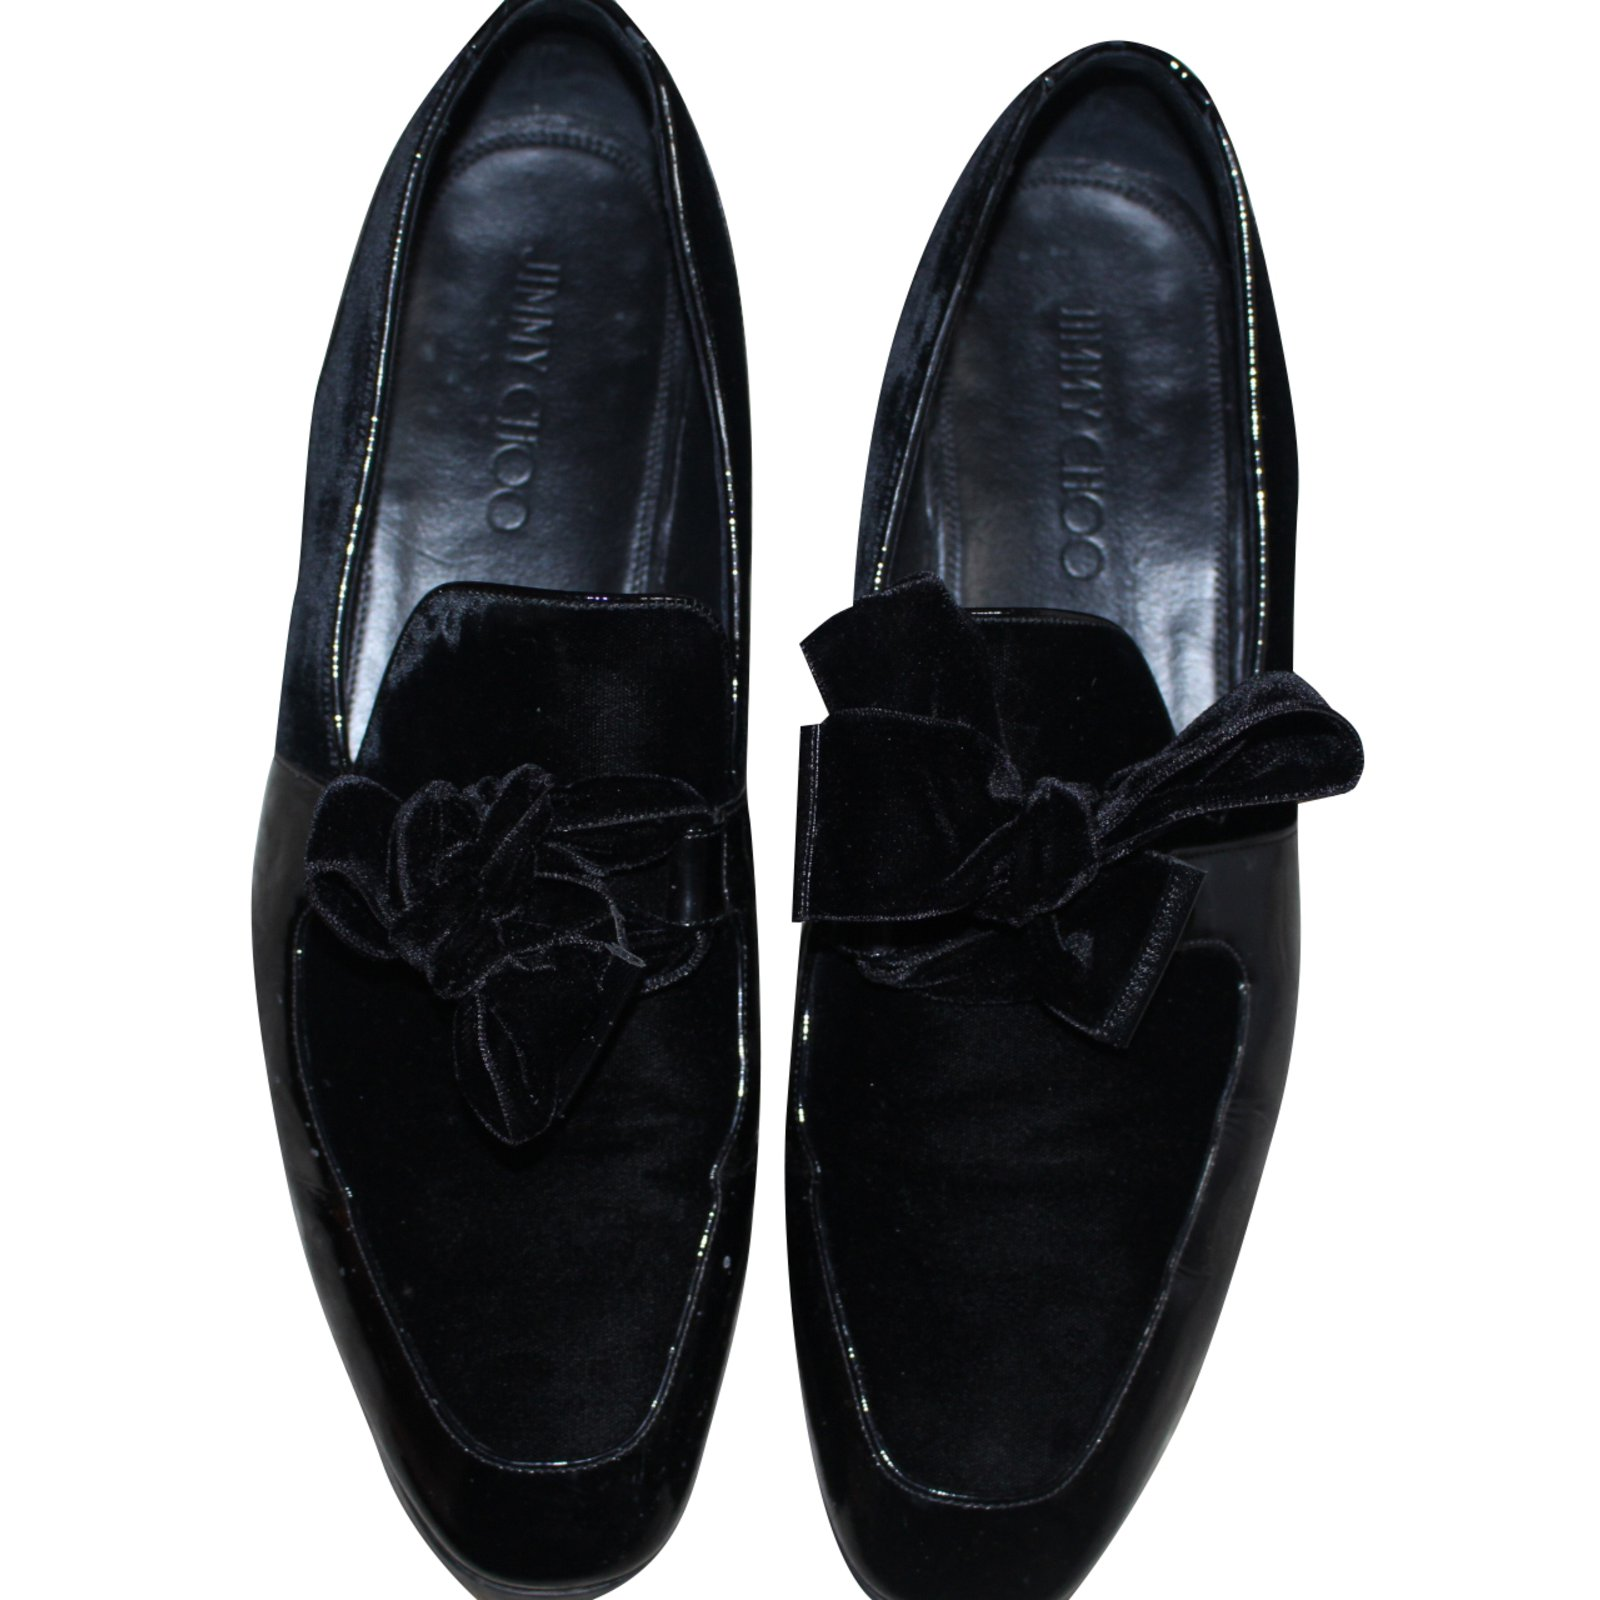 86a68987d233 Jimmy Choo Loafers Slip on Loafers Slip ons Patent leather Black ref.42171